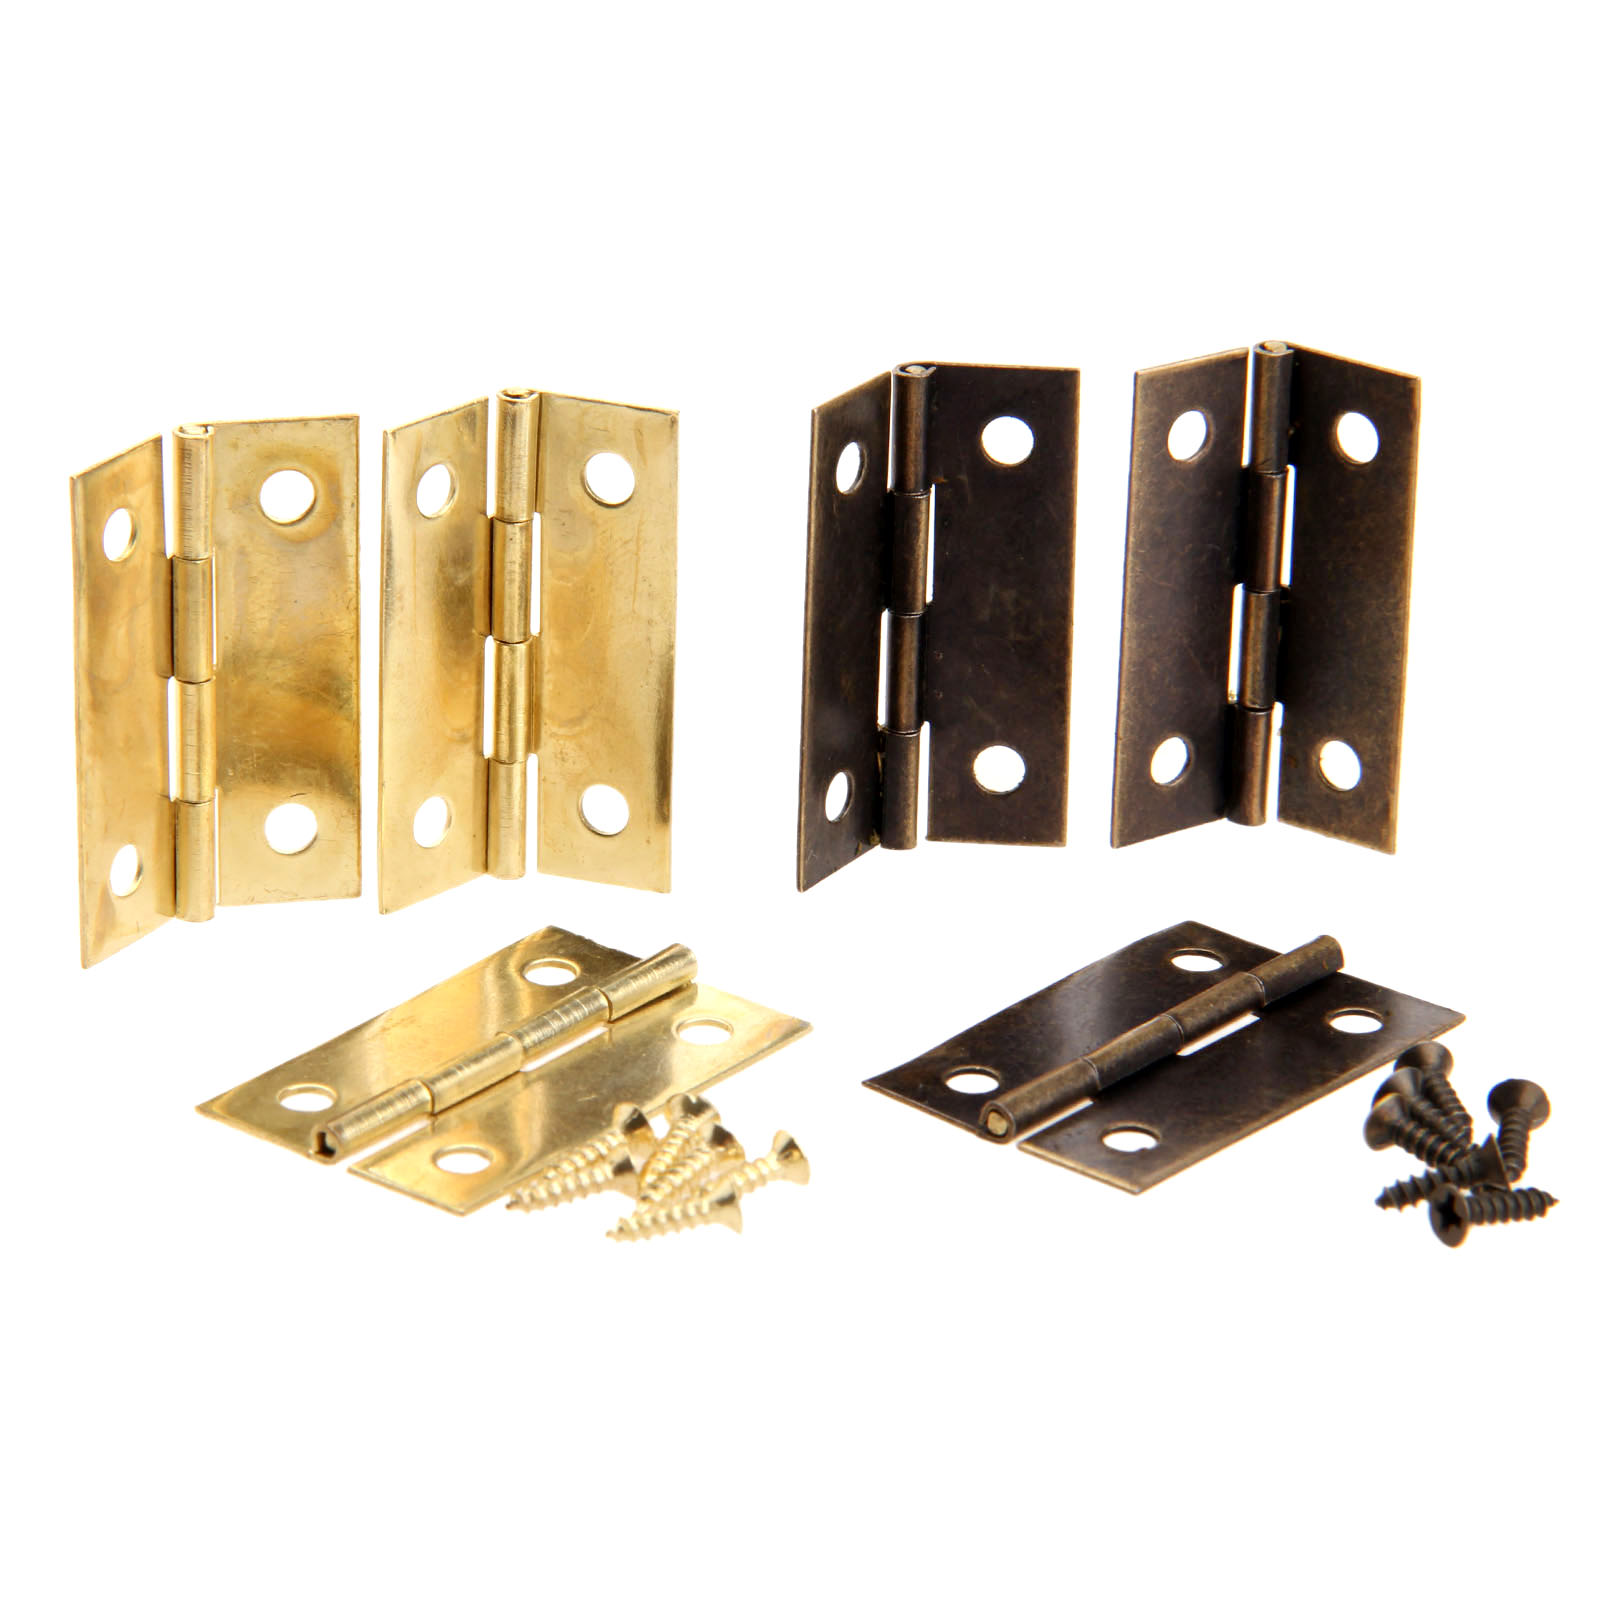 Dreld 4pcs Antique Bronze Gold Cabinet Hinges Furniture Accessories Wood Bo Decorative Hinge Ings 34x22mm In From Home